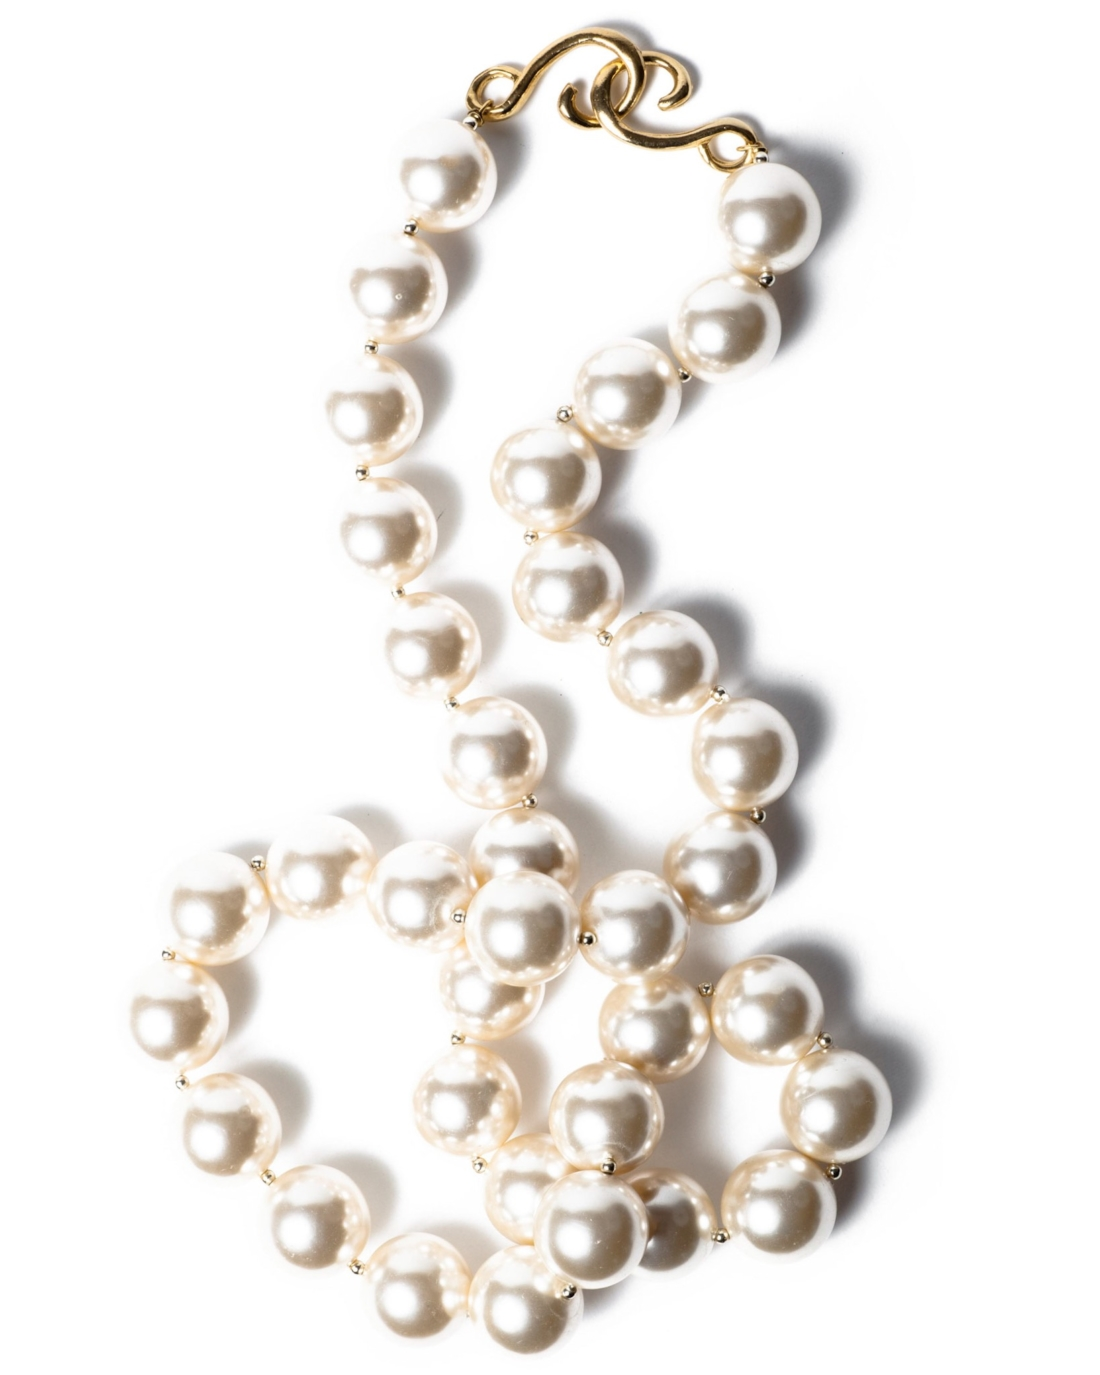 Vintage Long Glass Pearl Sautoir Necklace By Napier, Circa 1980's